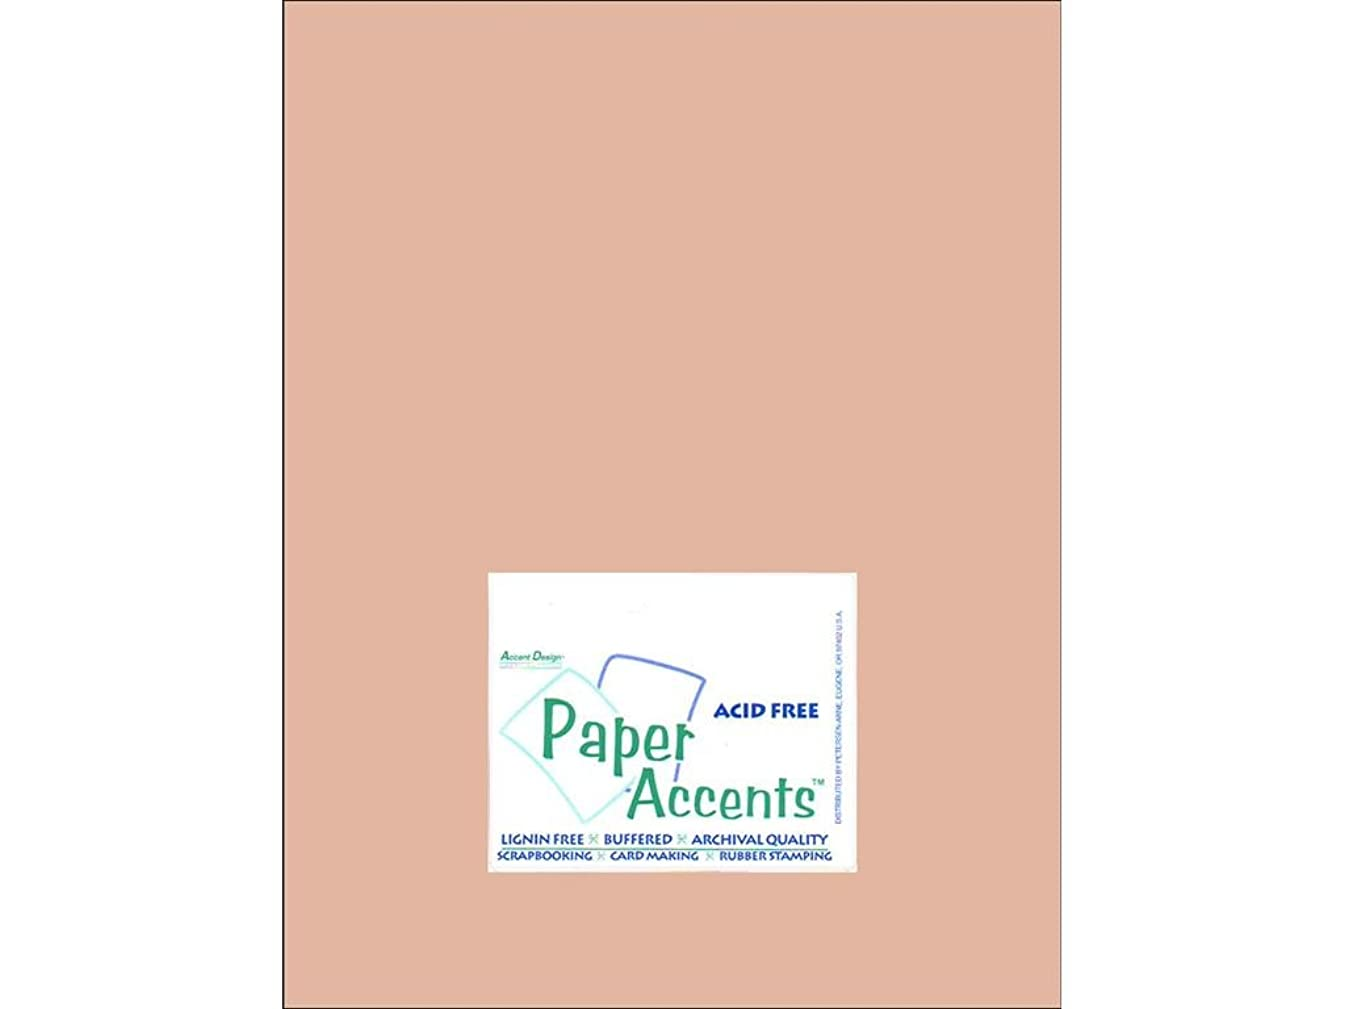 Accent Design Paper Accents Cdstk Muslin 8.5x11 74# Iced Cocoa